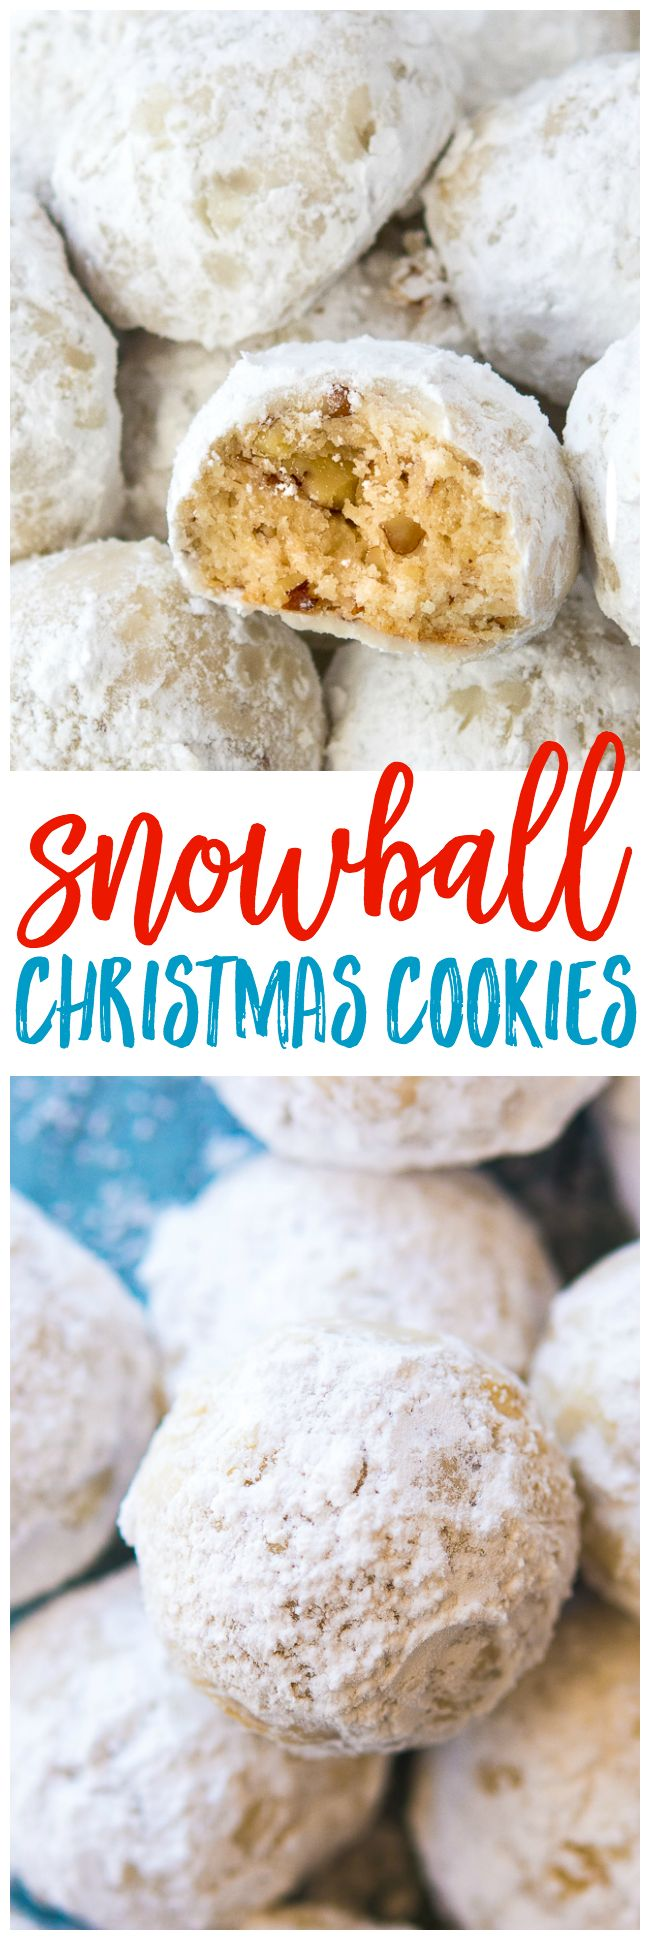 Snowball Christmas Cookies - The best buttery, pecan shortbread cookie (sometimes called Russian Teacakes or Mexican Wedding Cookies). You're going to adore these classic snowball Christmas cookies this holiday!